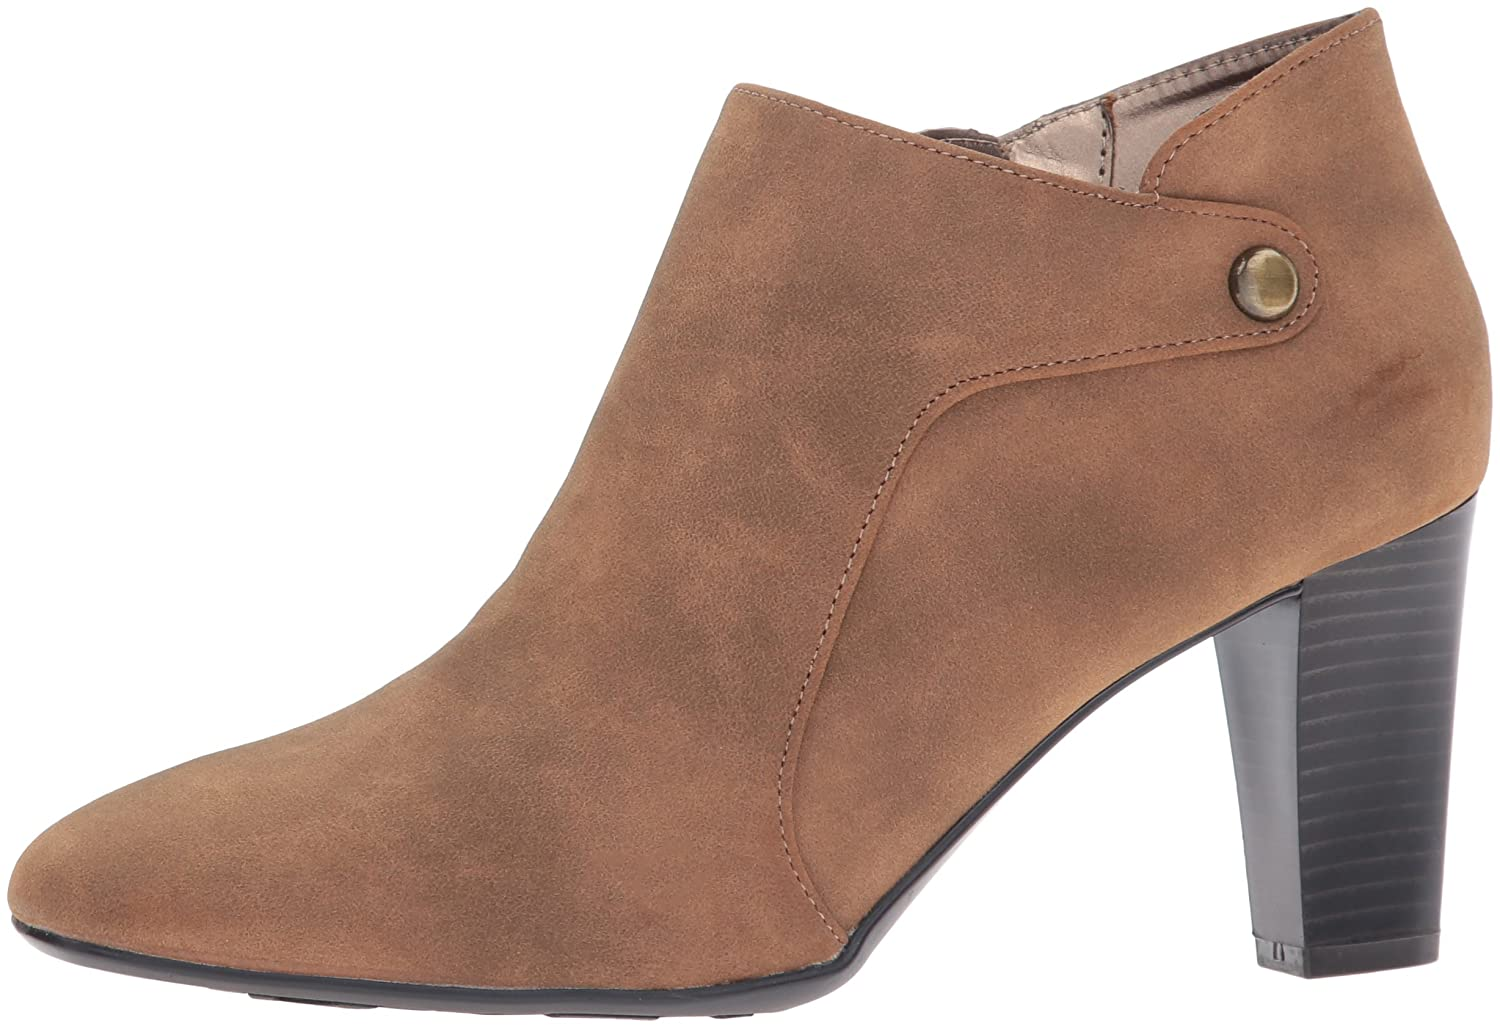 81caa9f8a LifeStride Women s Pays Pays Pays Ankle Bootie B01HCT5VSC 7 B(M) US ...